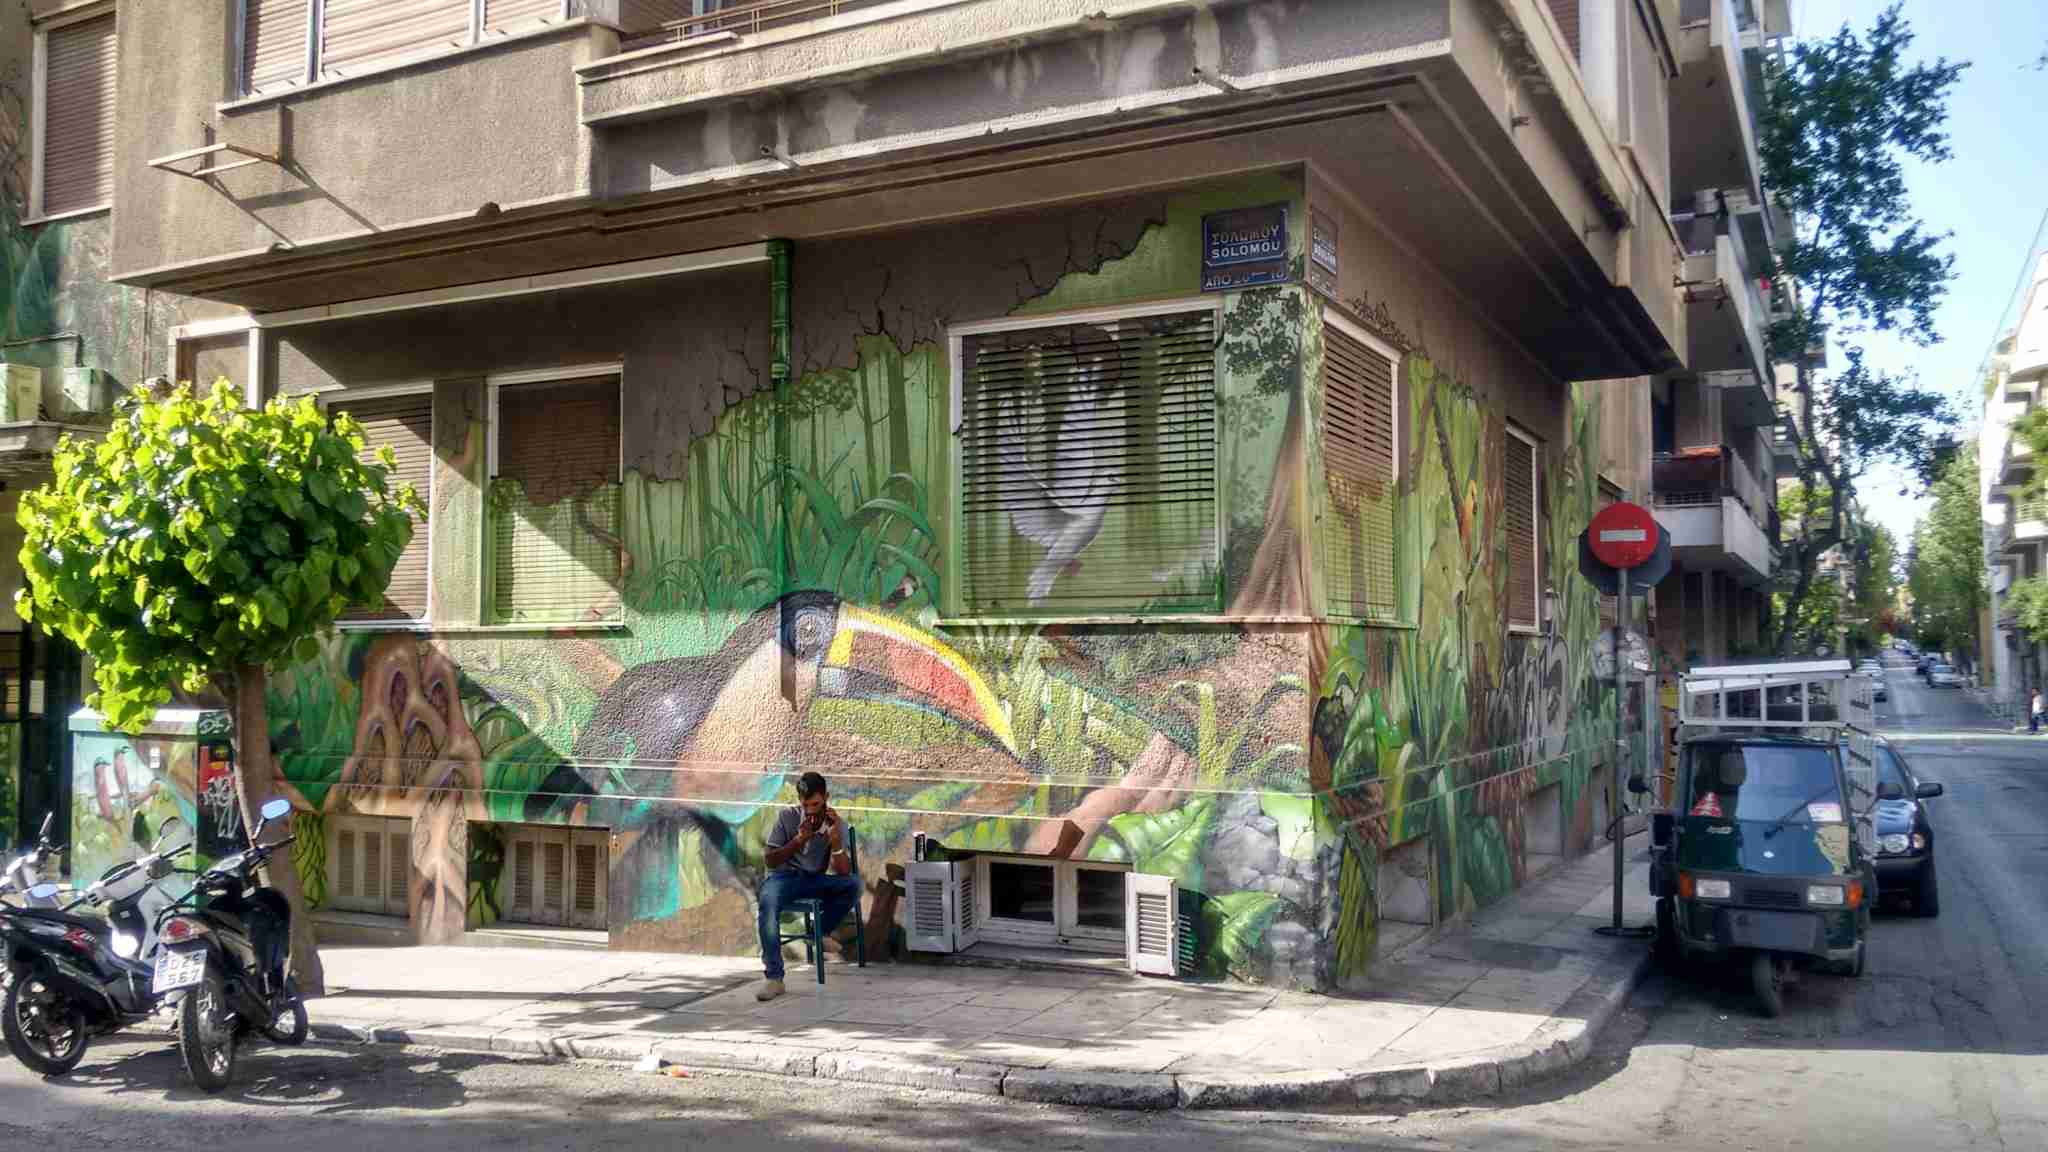 Athens has a vibrant street art scene, accelerated by the ongoing fiscal crisis. For the best, stroll around the often overlooked Exarcheia neighborhood.